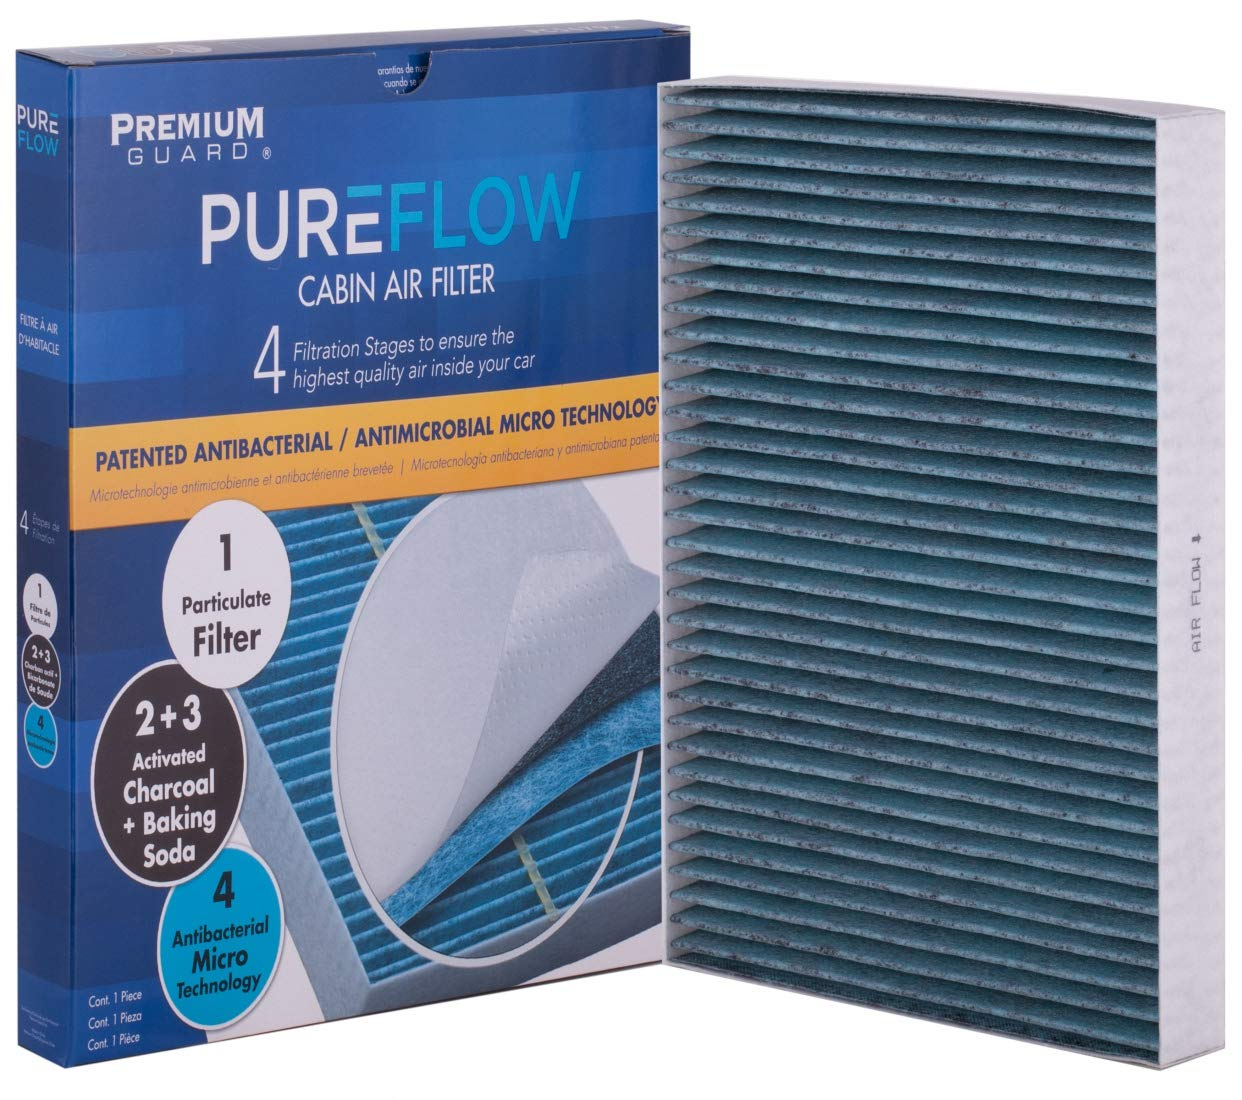 PureFlow Cabin Air Filter PC6176X   Fits 2011-18 Chrysler 300, 2010-18 Dodge Challenger, 2011-18 Charger by Premium Guard